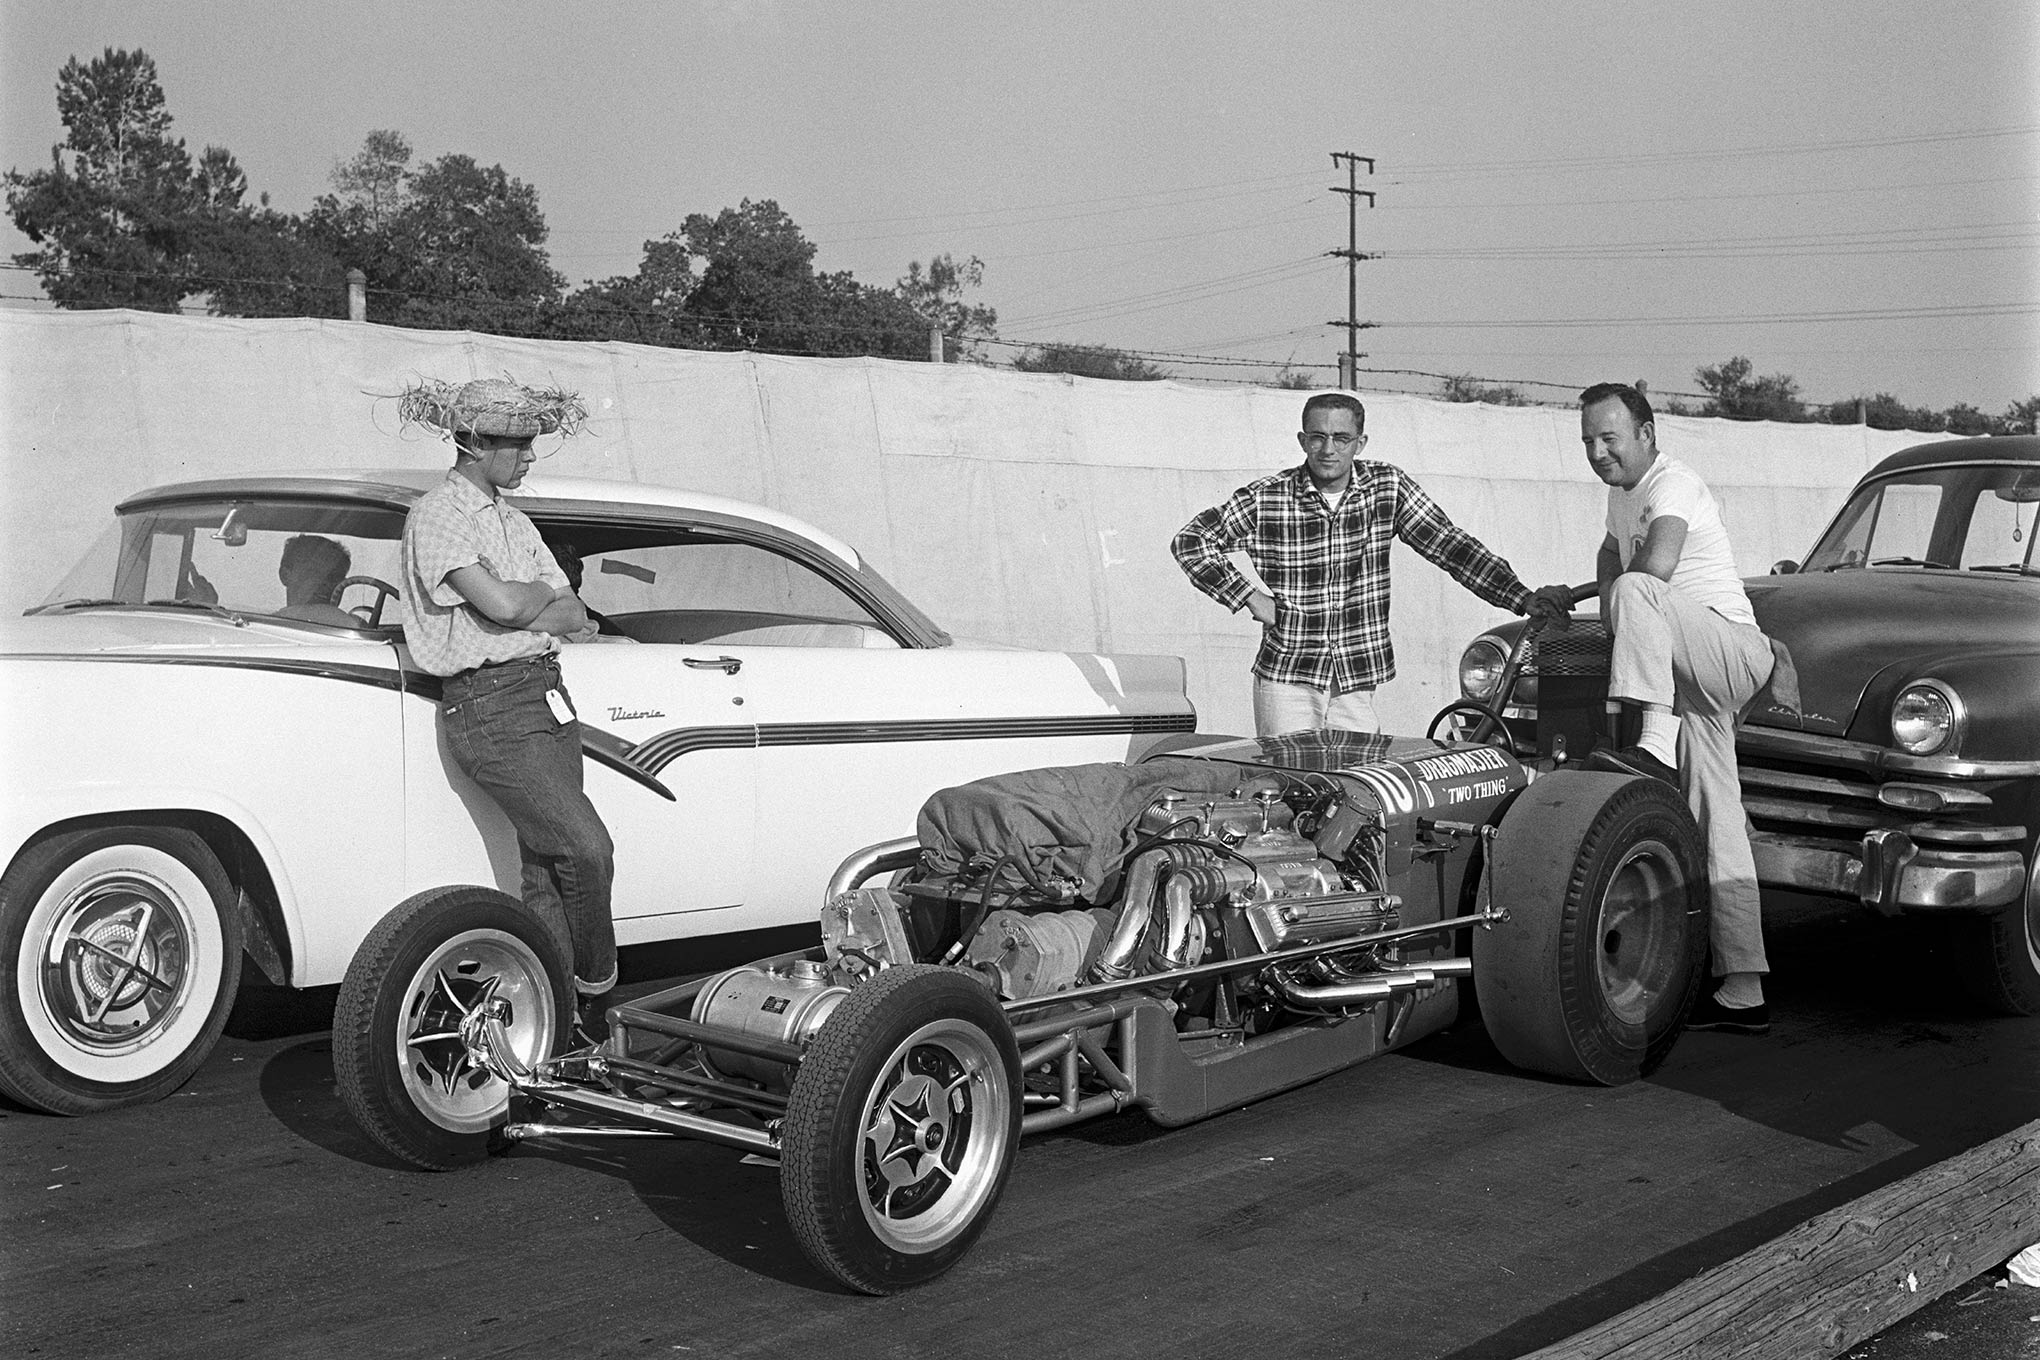 "The Dragmaster ""Two-Thing"" was one of the most famous twin-engine dragsters of the age, setting an AA/Dragster speed record at the Winternationals of 174.92 mph."